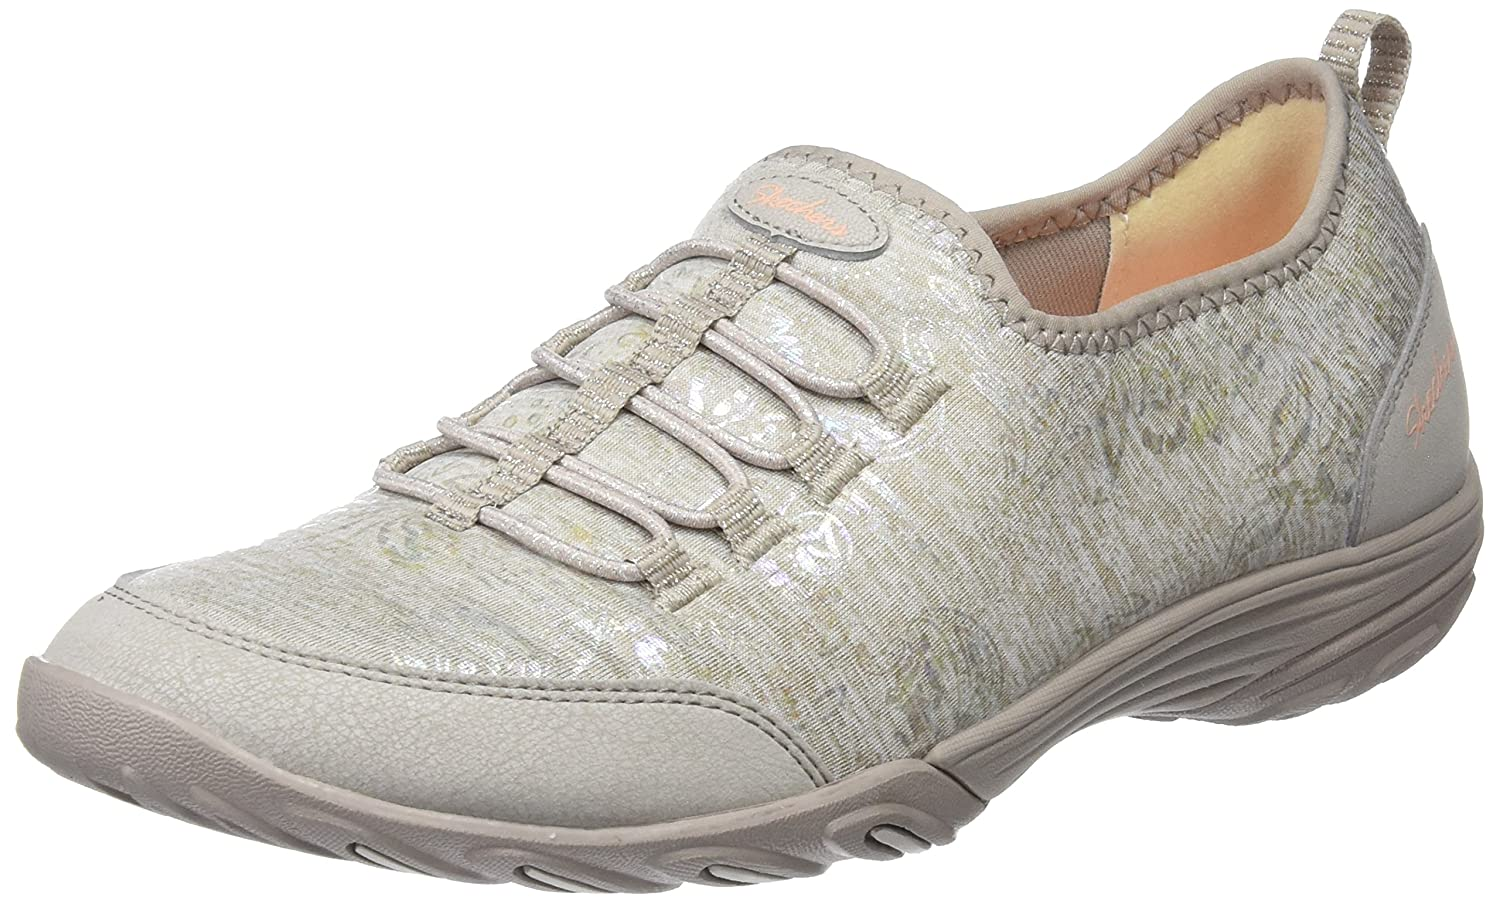 Skechers Empress Trendy Classic Womens Slip On Sneakers B076T8DSYG 8 B(M) US|Taupe